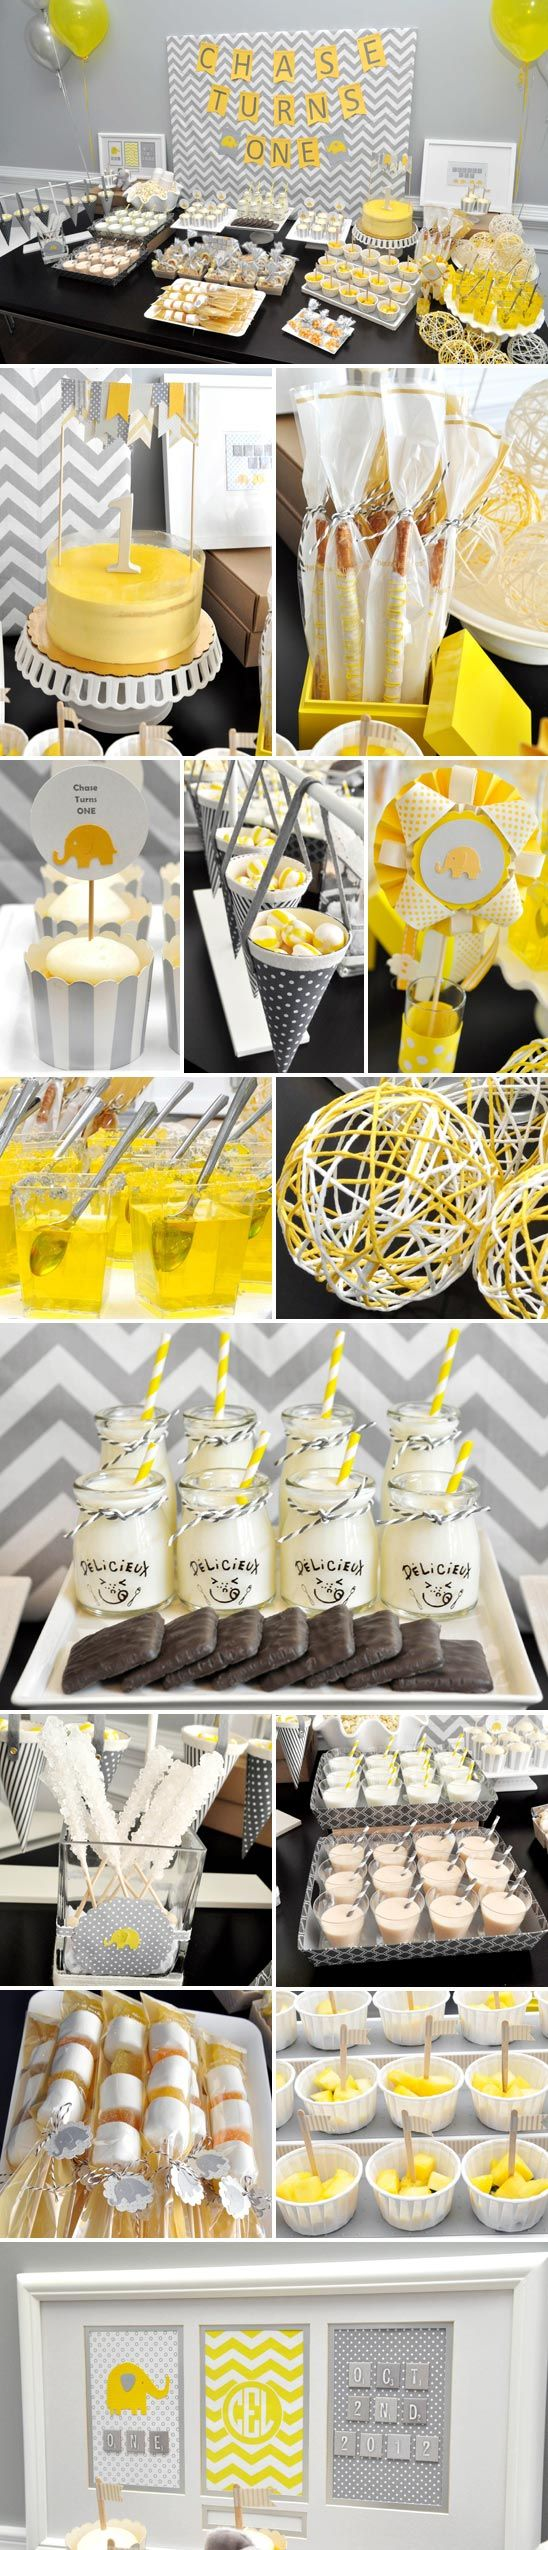 Elephant Themed Yellow and Gray Dessert Bar - On to Baby